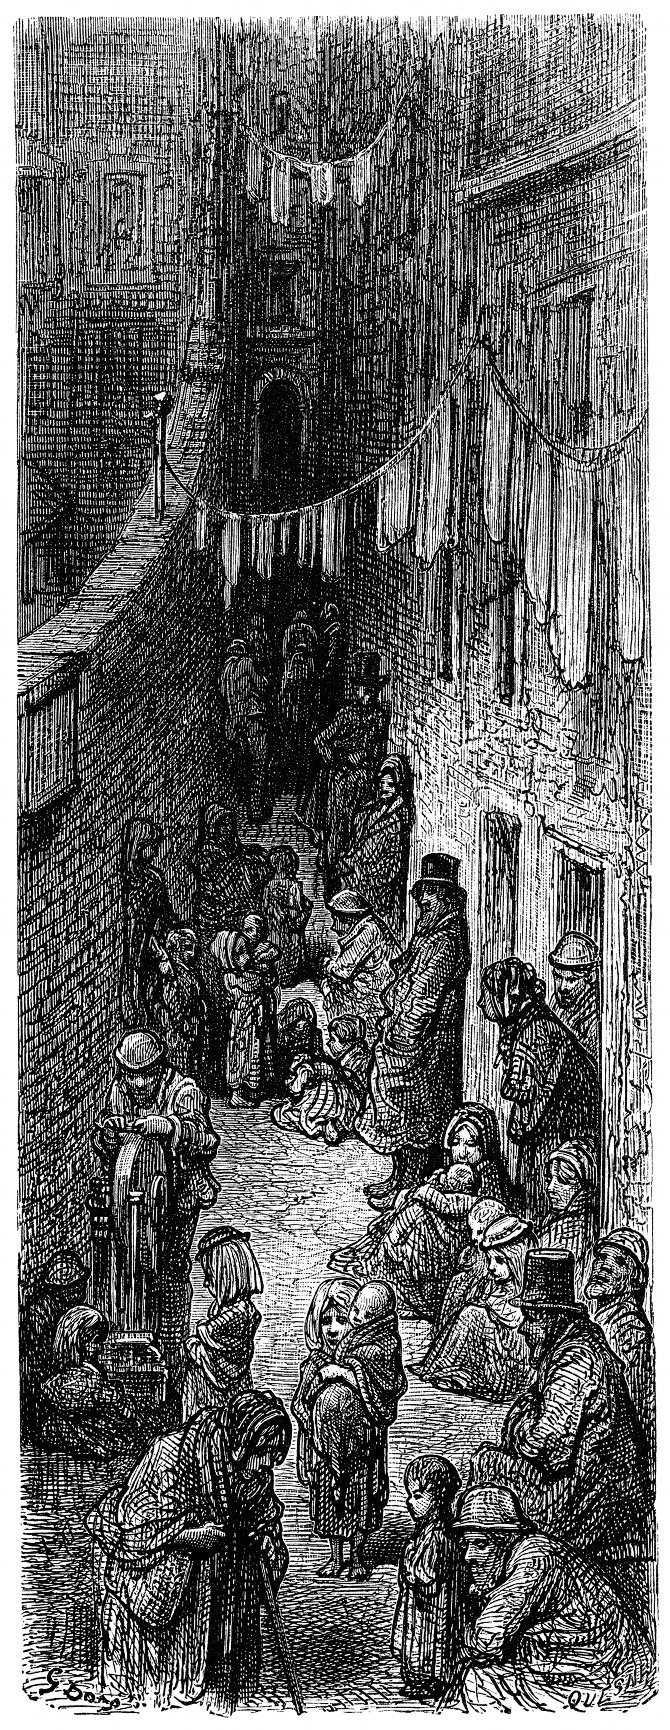 Orange Court, near Drury Lane, London, as depicted by Gustave Dore in 1872